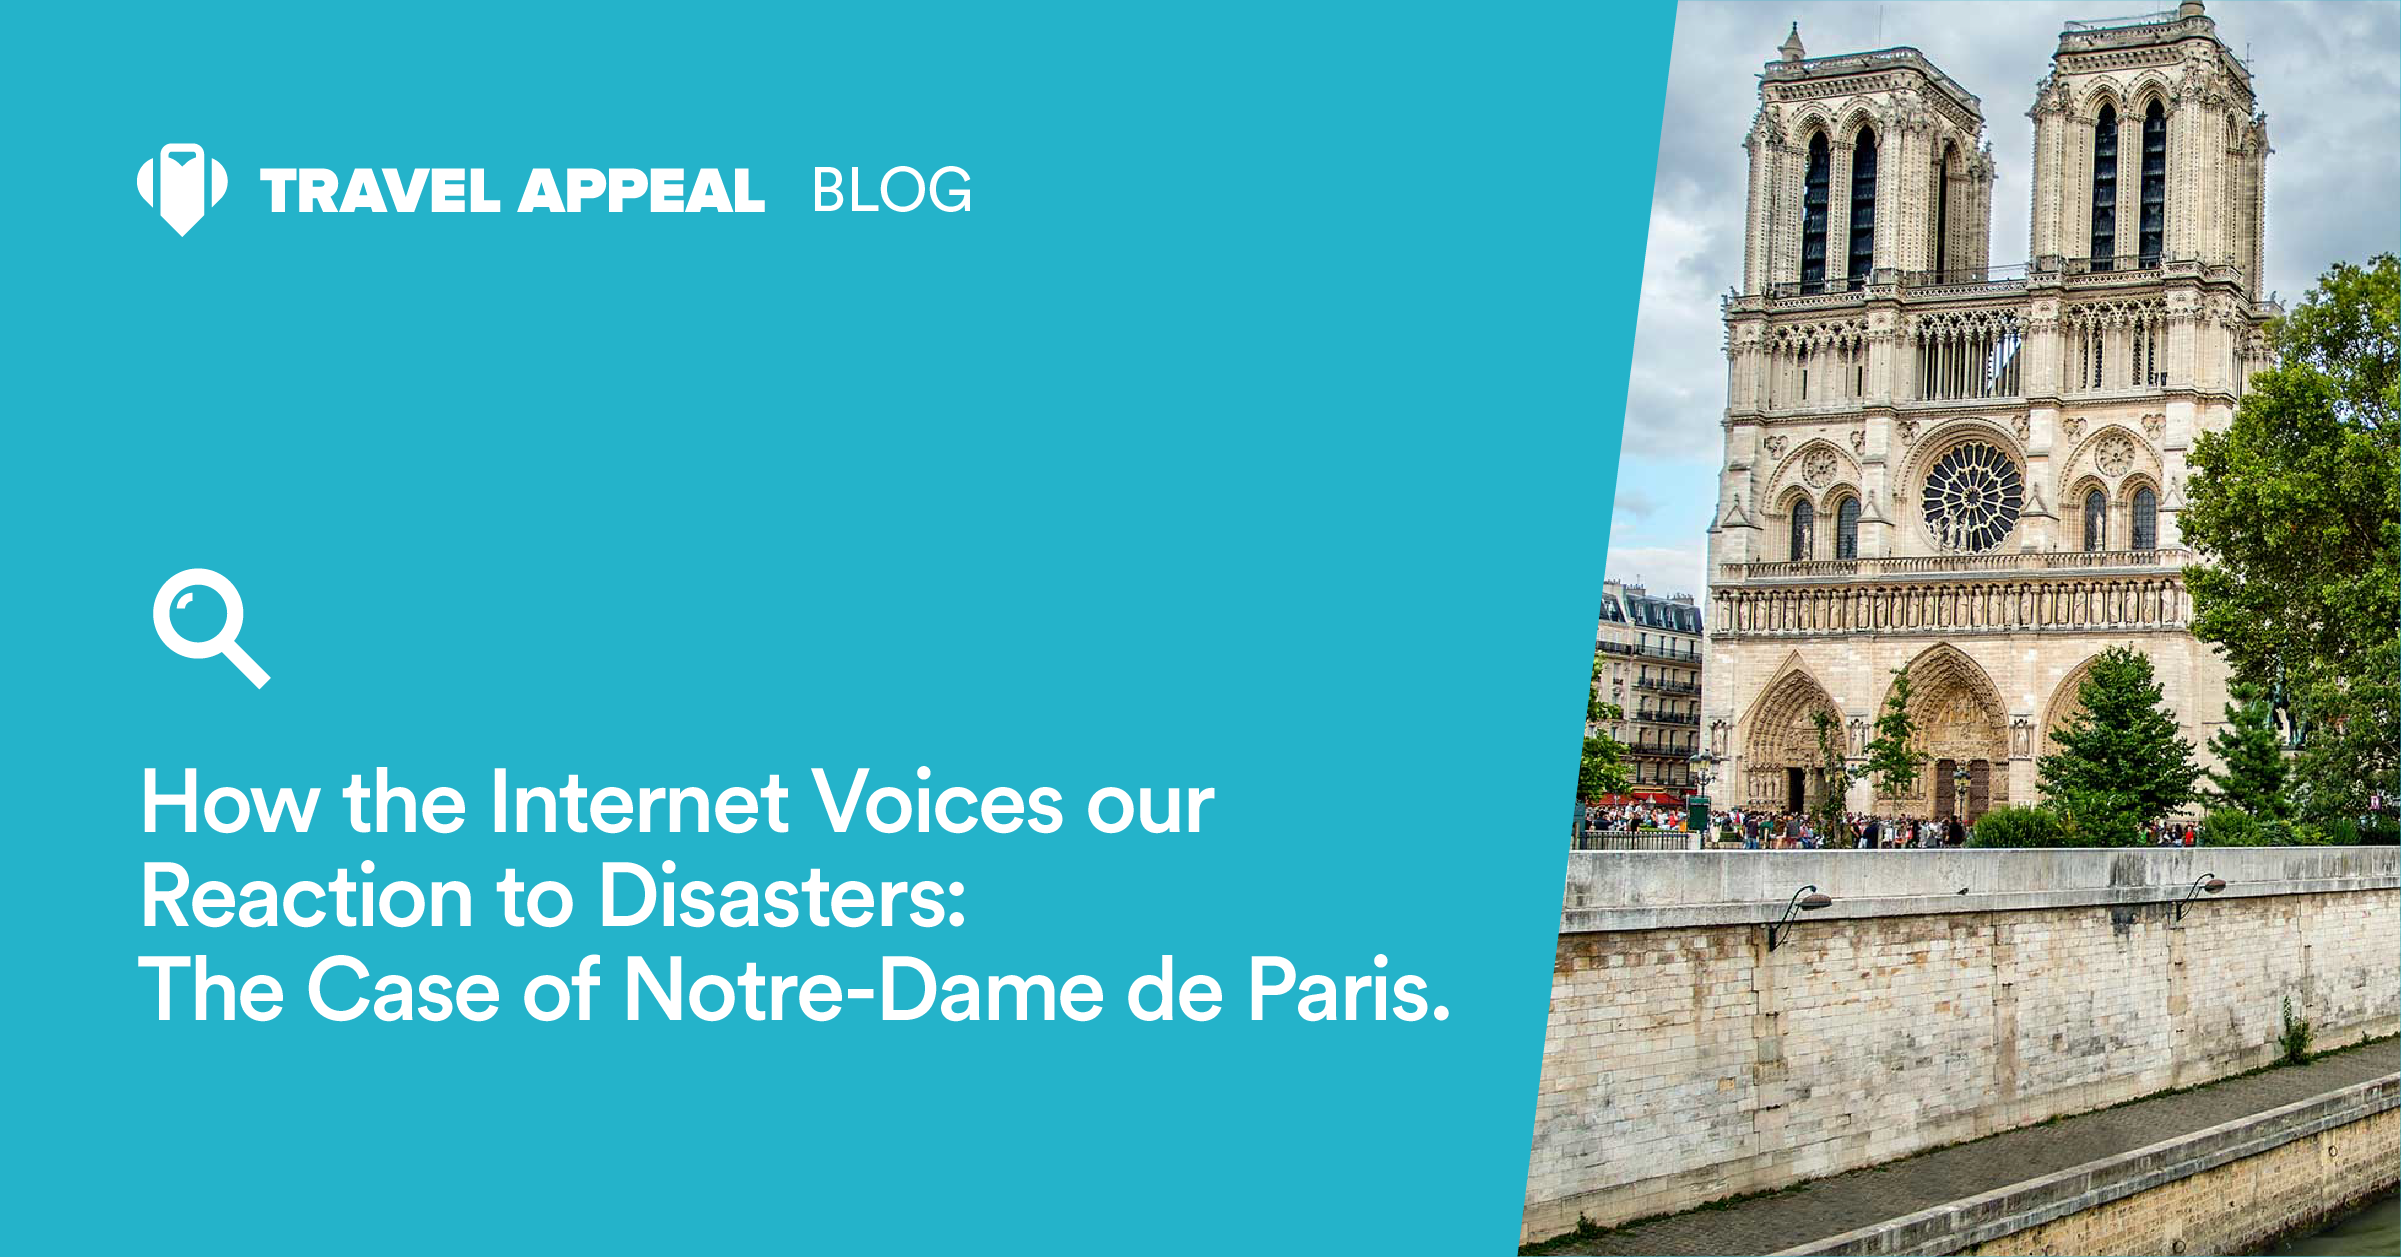 How the Internet Voices our Reaction to Disasters: The Case of Notre-Dame de Paris